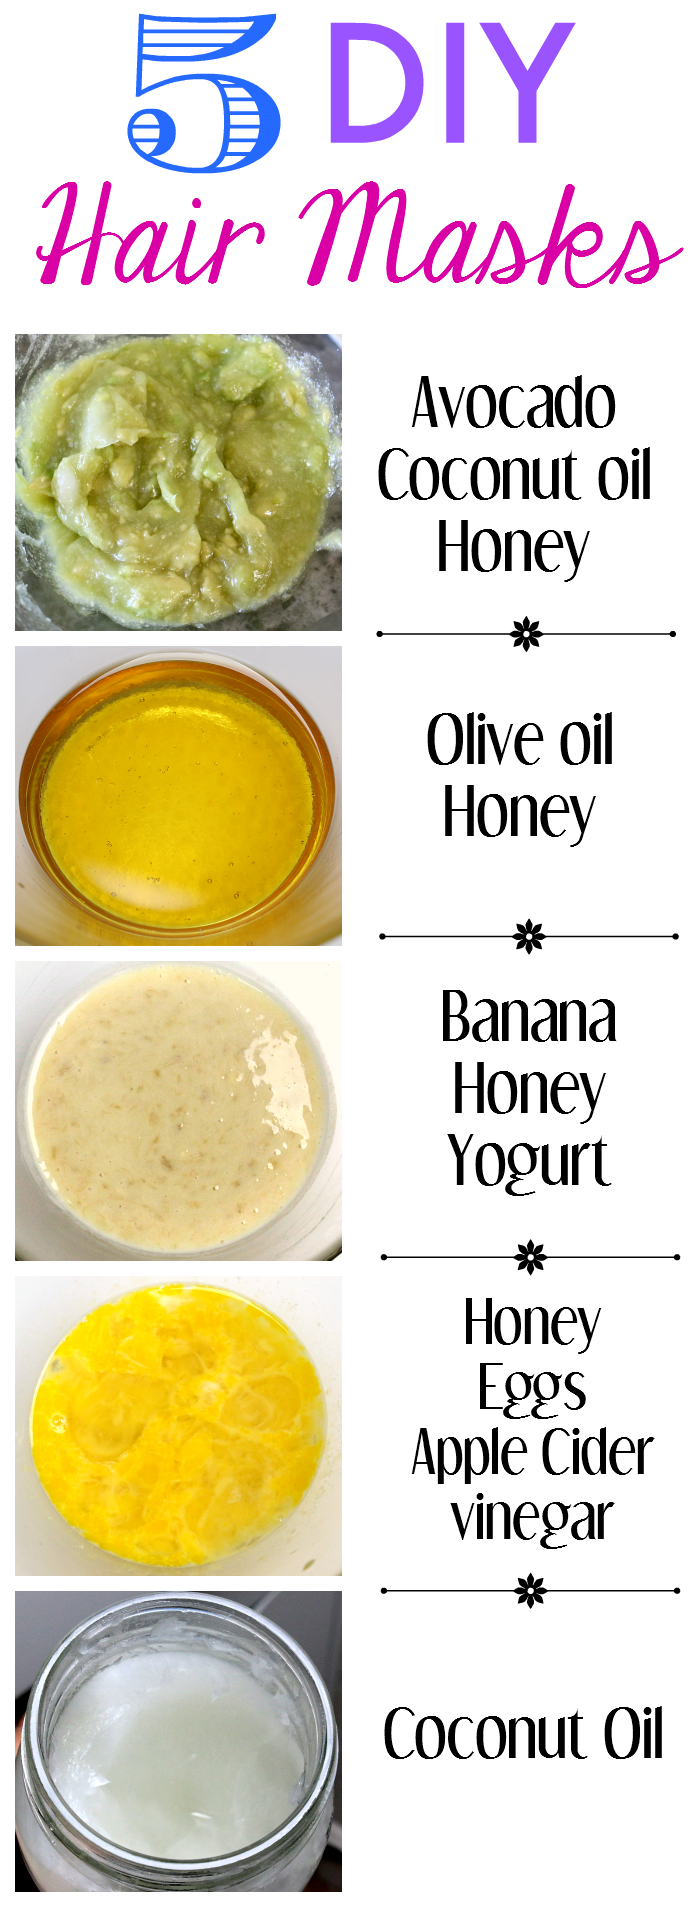 5 Diy Hair Masks You Can Make At Home Peek Amp Ponder